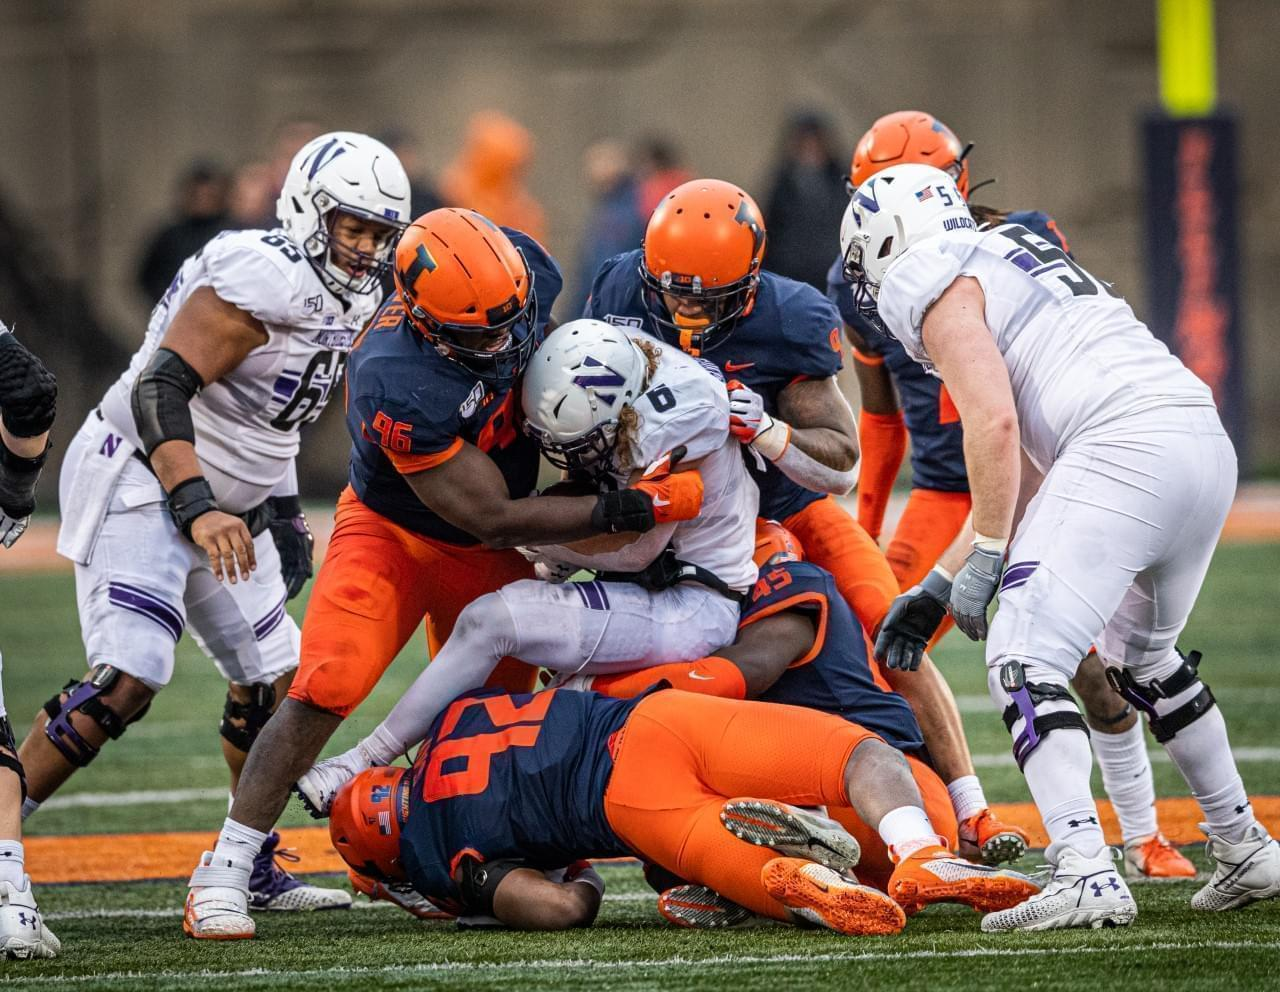 Illinois defenders bring down Northwestern running back Drake Anderson Saturday at Memorial Stadium in Champaign.